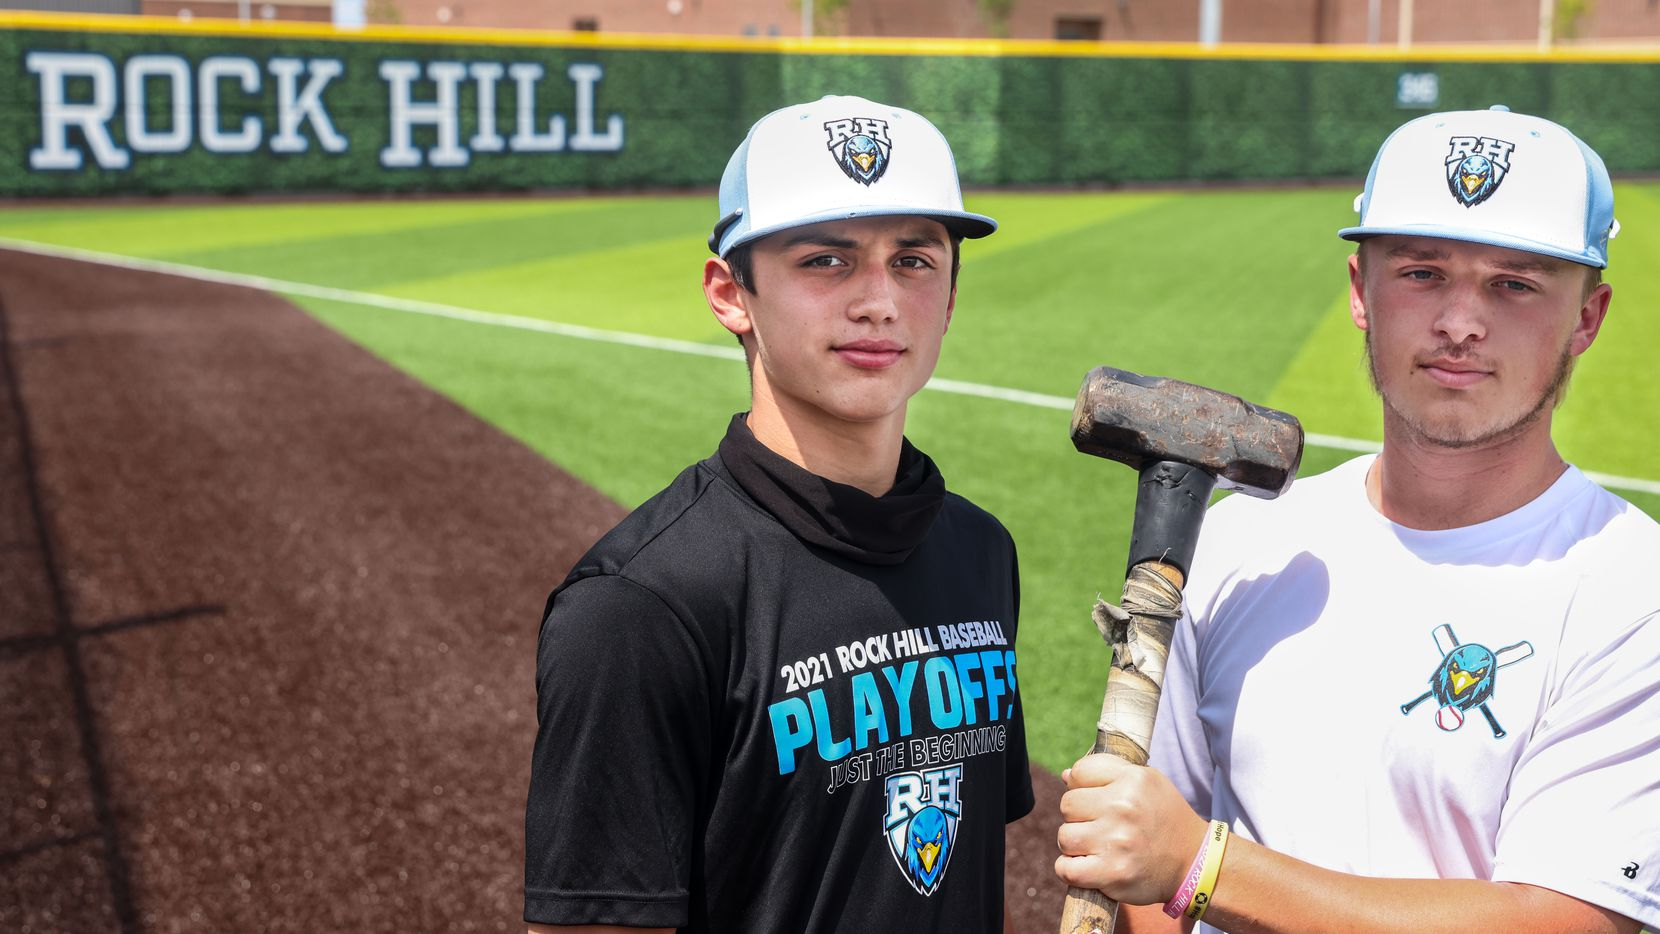 Varsity baseball players Brenner Cox, left, and Josh Livingston pose for a portrait during an after school practice at the Rock Hill High School baseball field in Frisco on Wednesday, May 19, 2021. The new team is now in the regional quarterfinals.